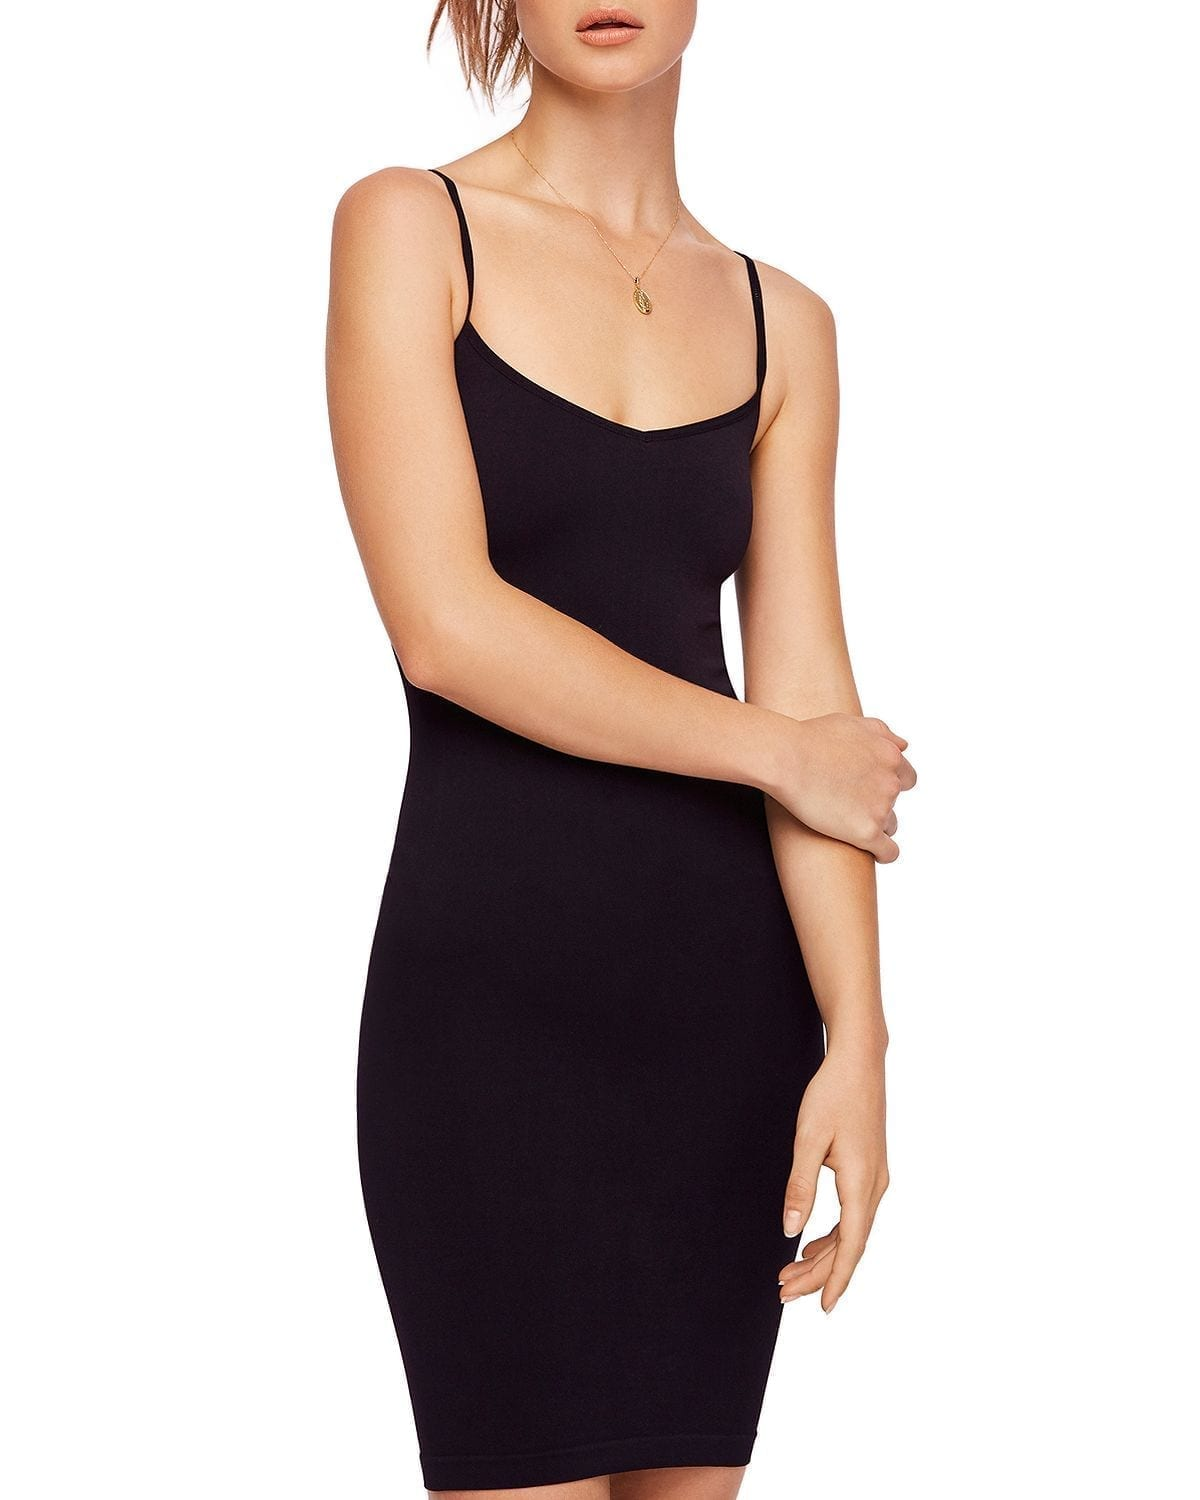 FREE PEOPLE Seamless Body-Con Dress